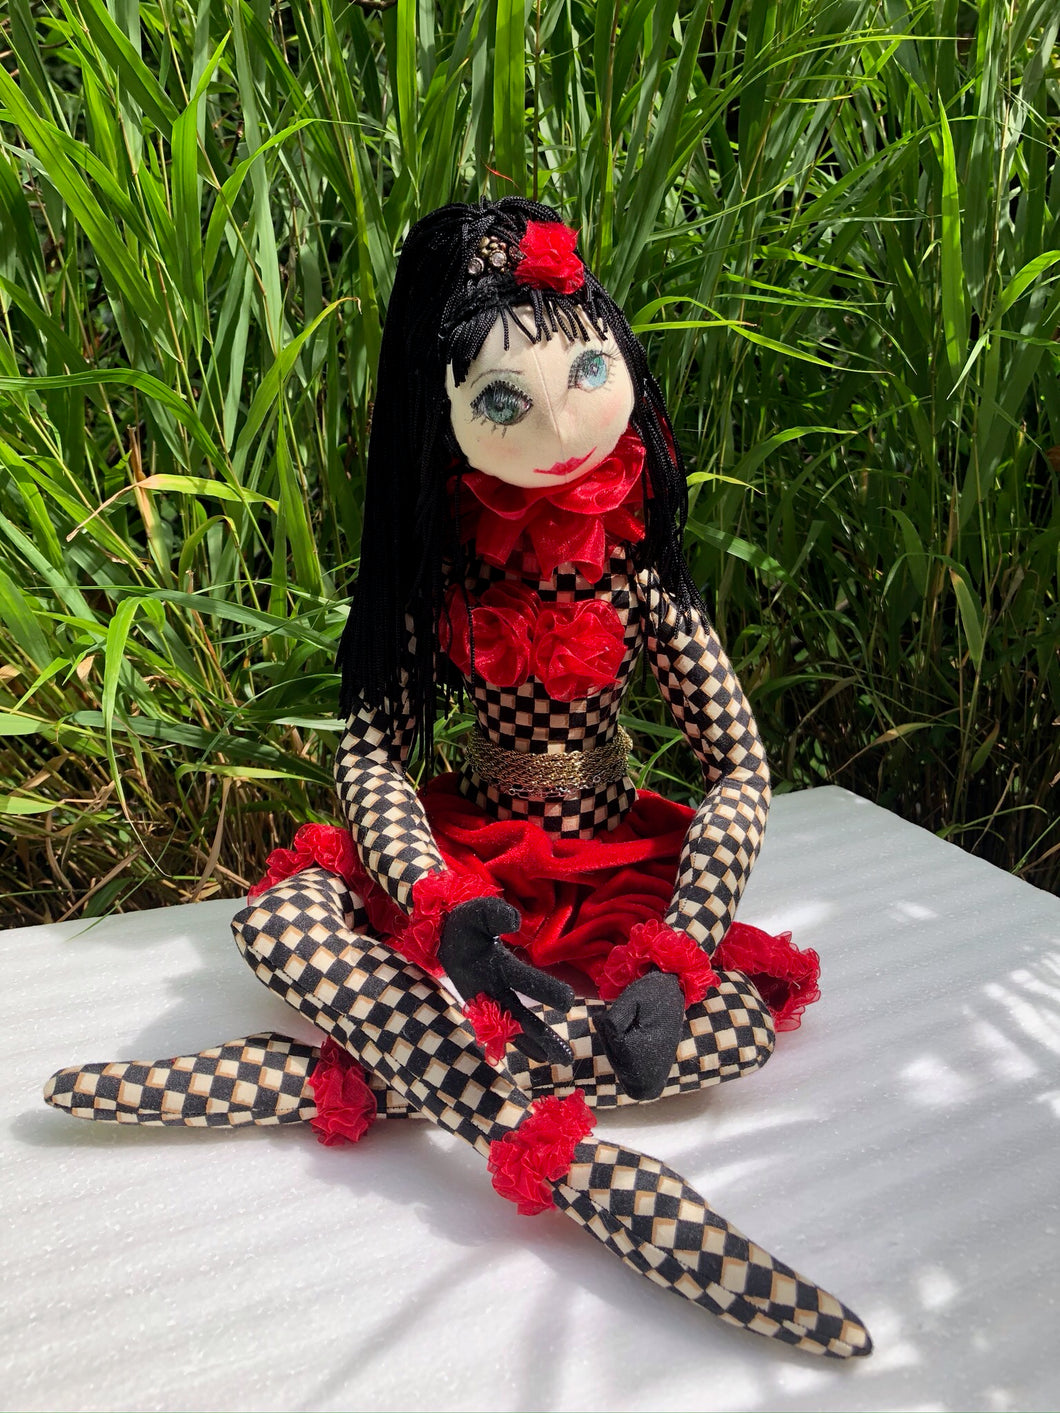 Handmade Art Doll - The Crafty Artisans